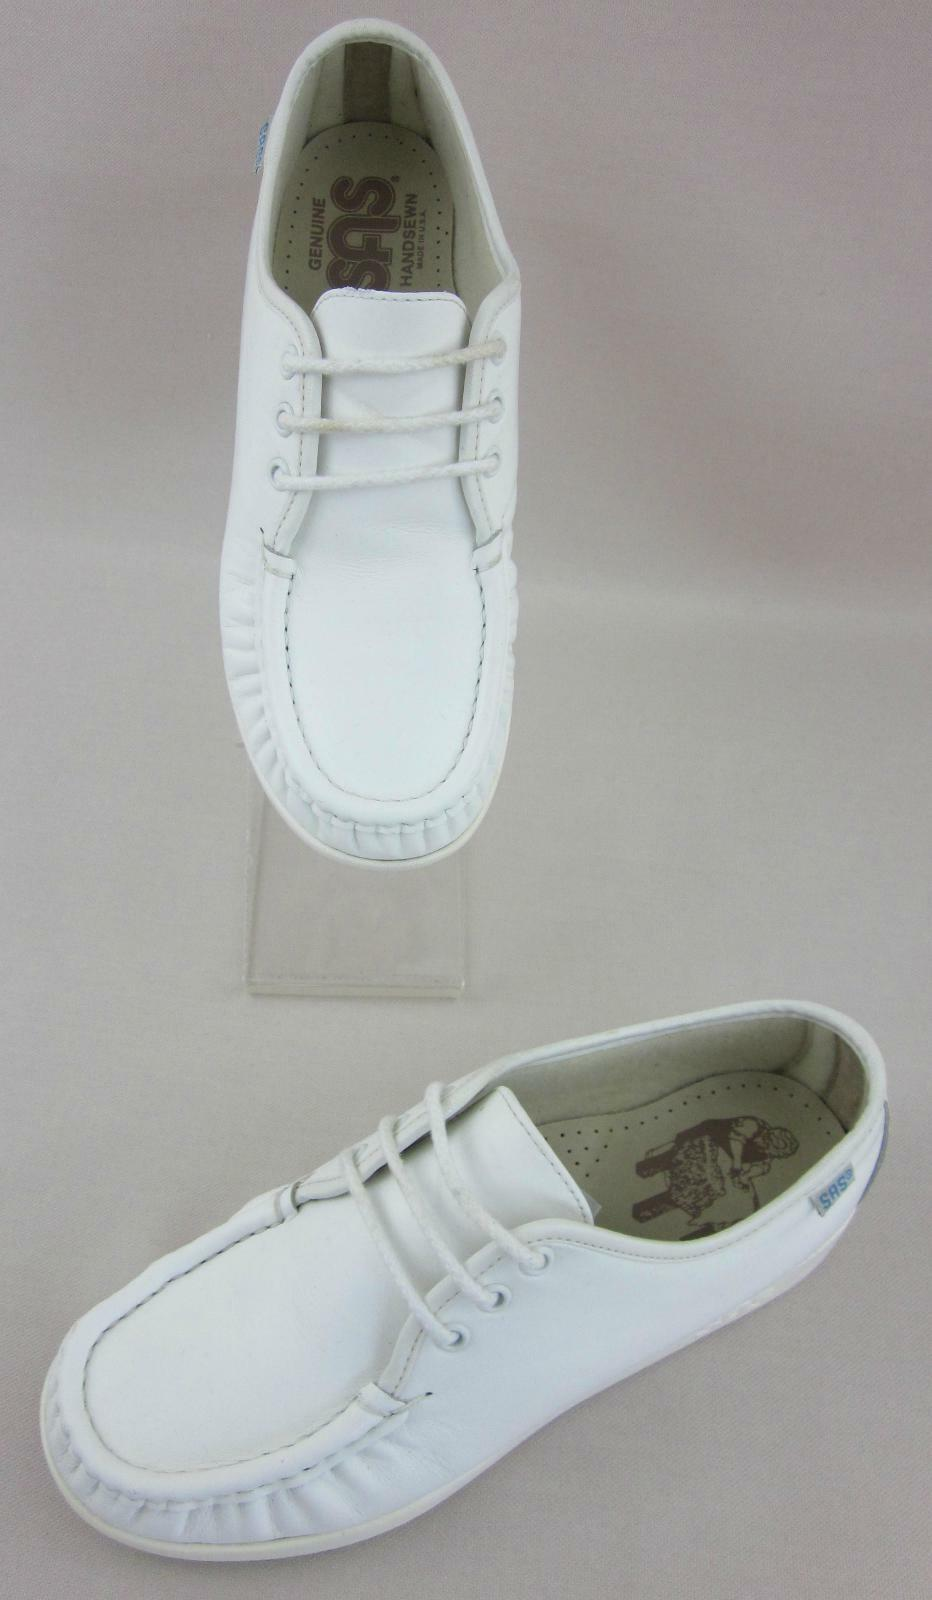 SAS US Siesta damen Comfort schuhe Weiß Leather US SAS 7WW Extra Wide USA Made 74cf7f